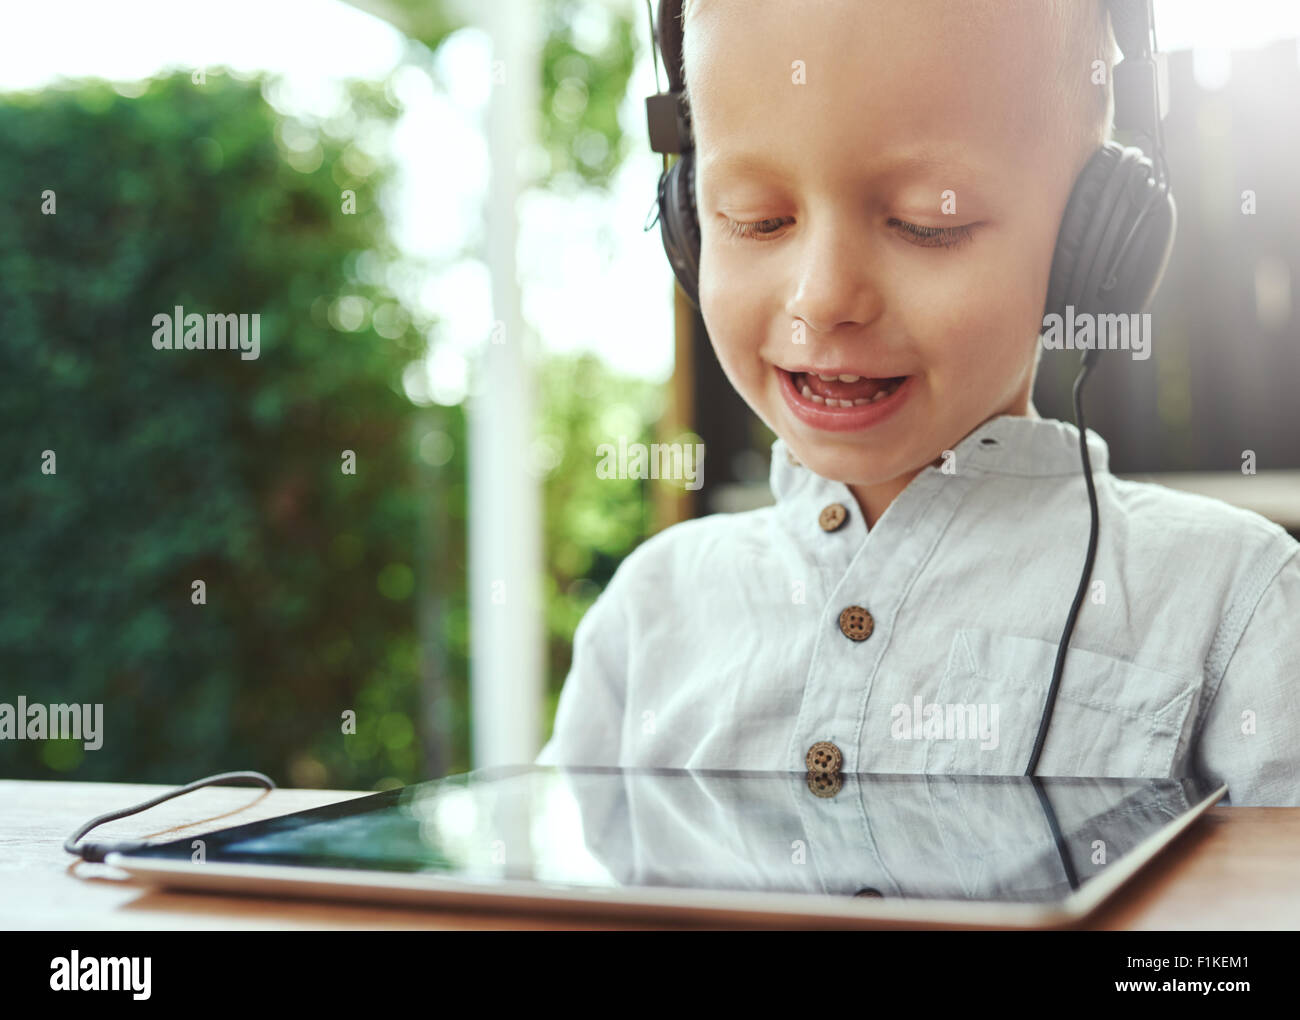 Adorable little boy listening to recorded music on his tablet computer using headphones with a delightful smile - Stock Image